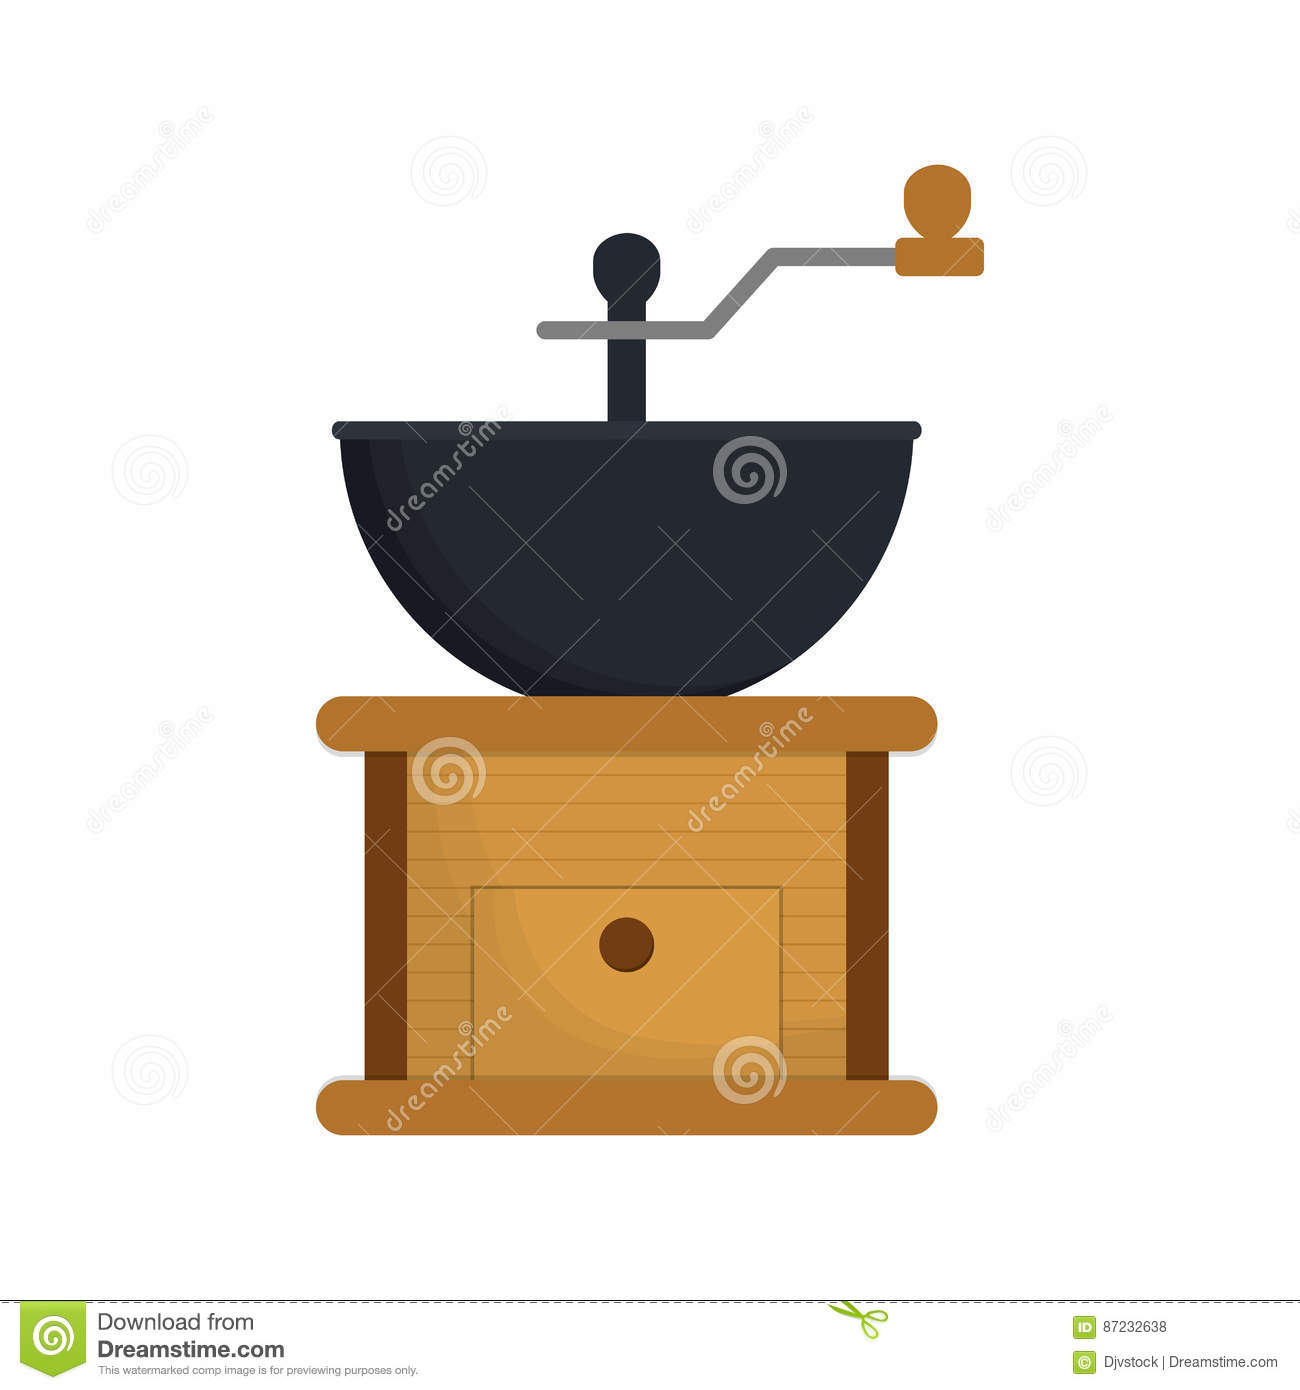 Coffee Mill Make Table Wooden Stock Illustration - Image: 87232638